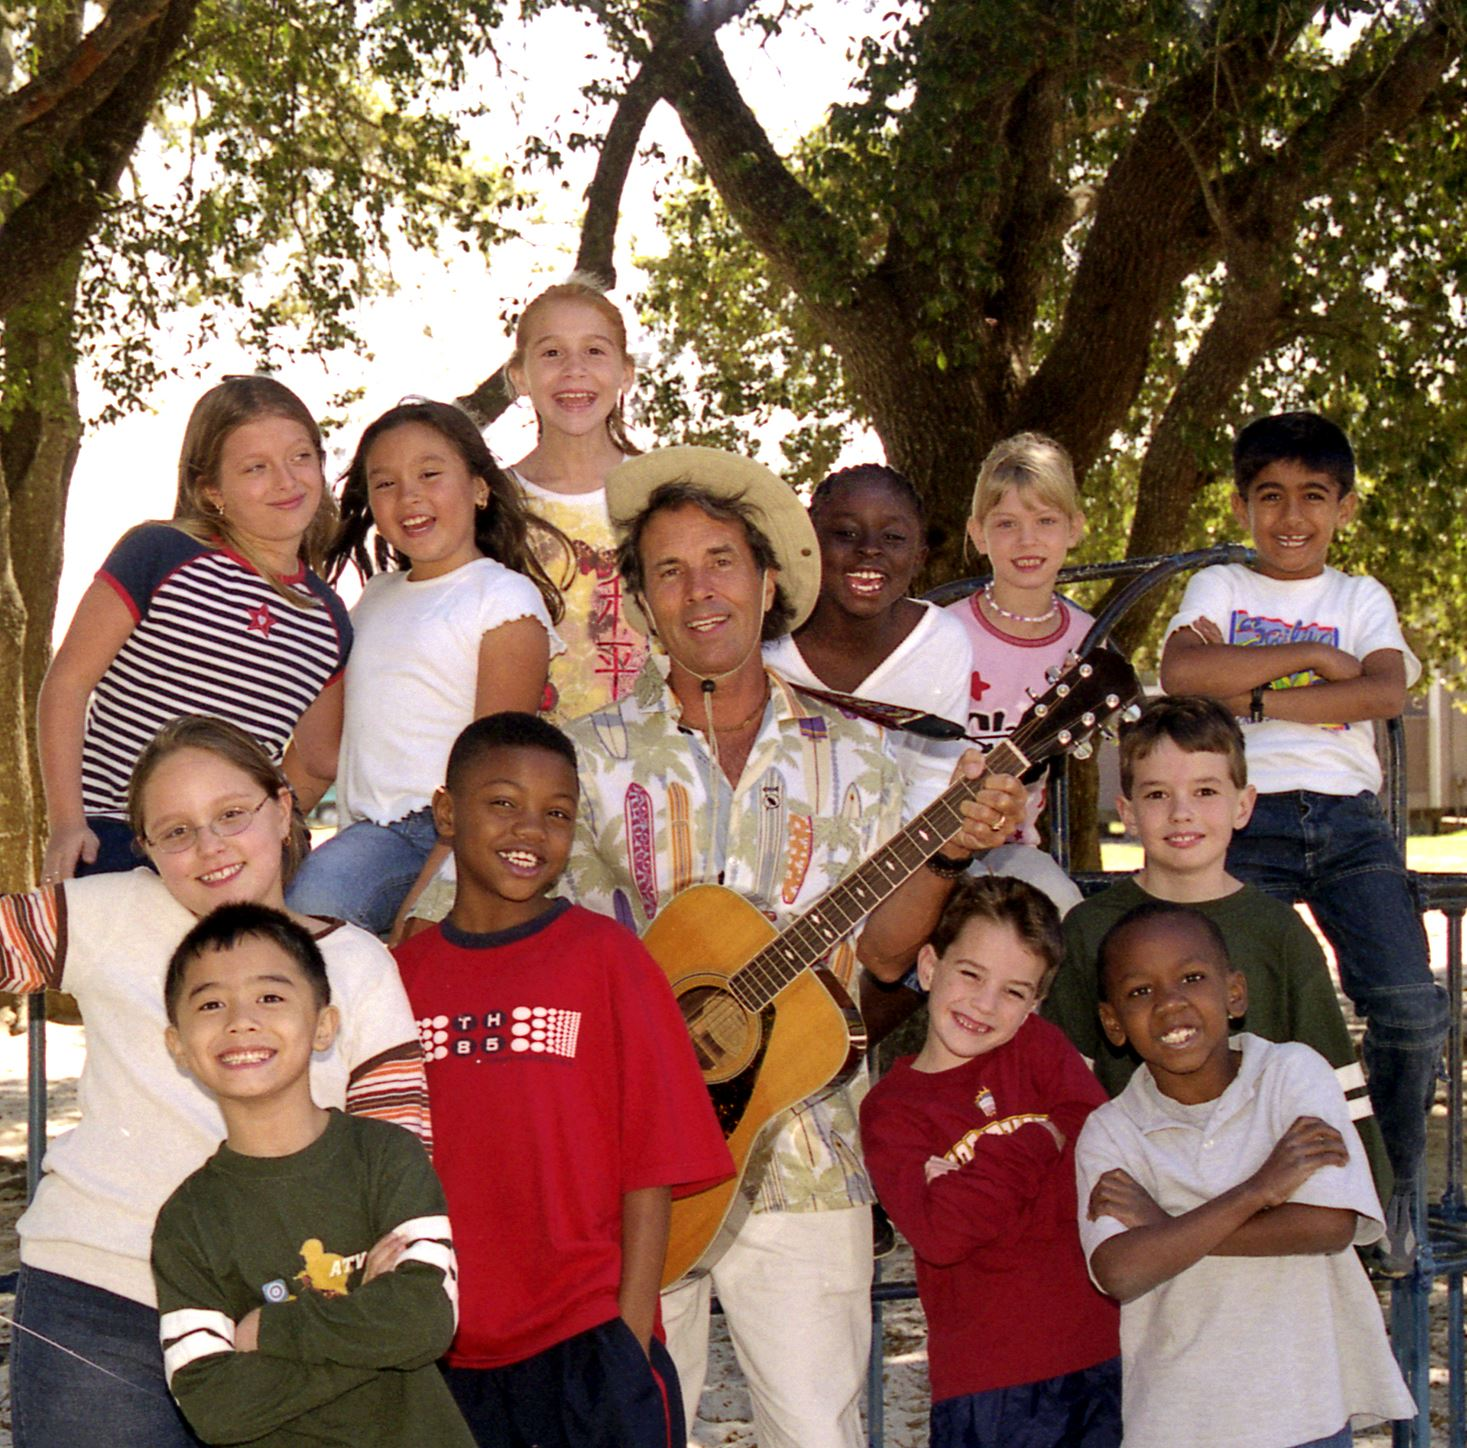 A picture of Mr. Mac holding his guitar with children surrounding him.